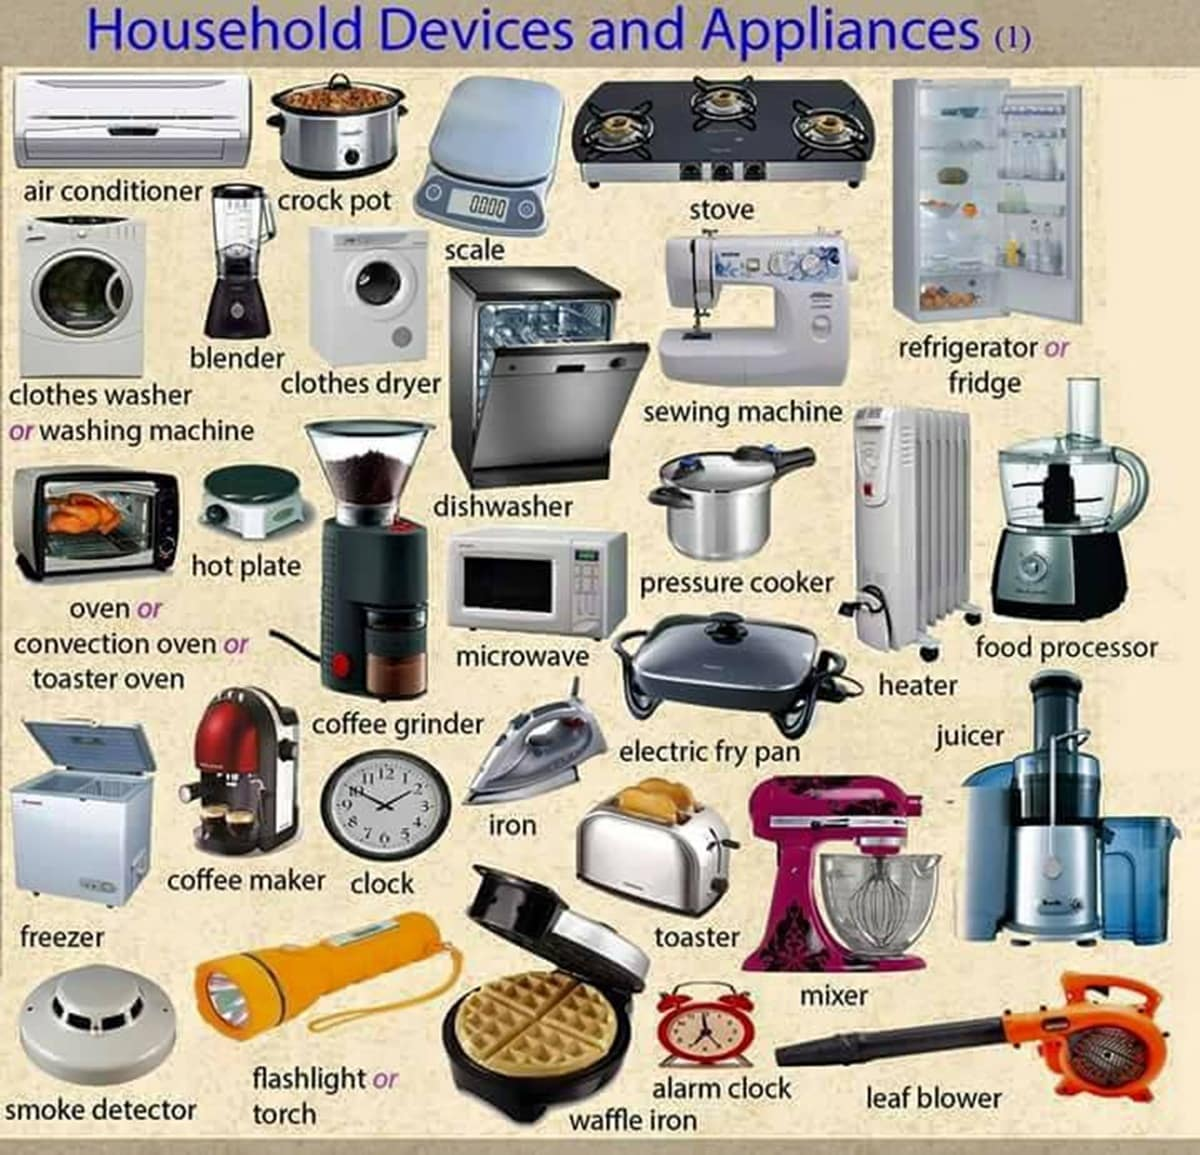 Tools, Equipment, Devices and Home Appliances Vocabulary: 300+ Items Illustrated 13